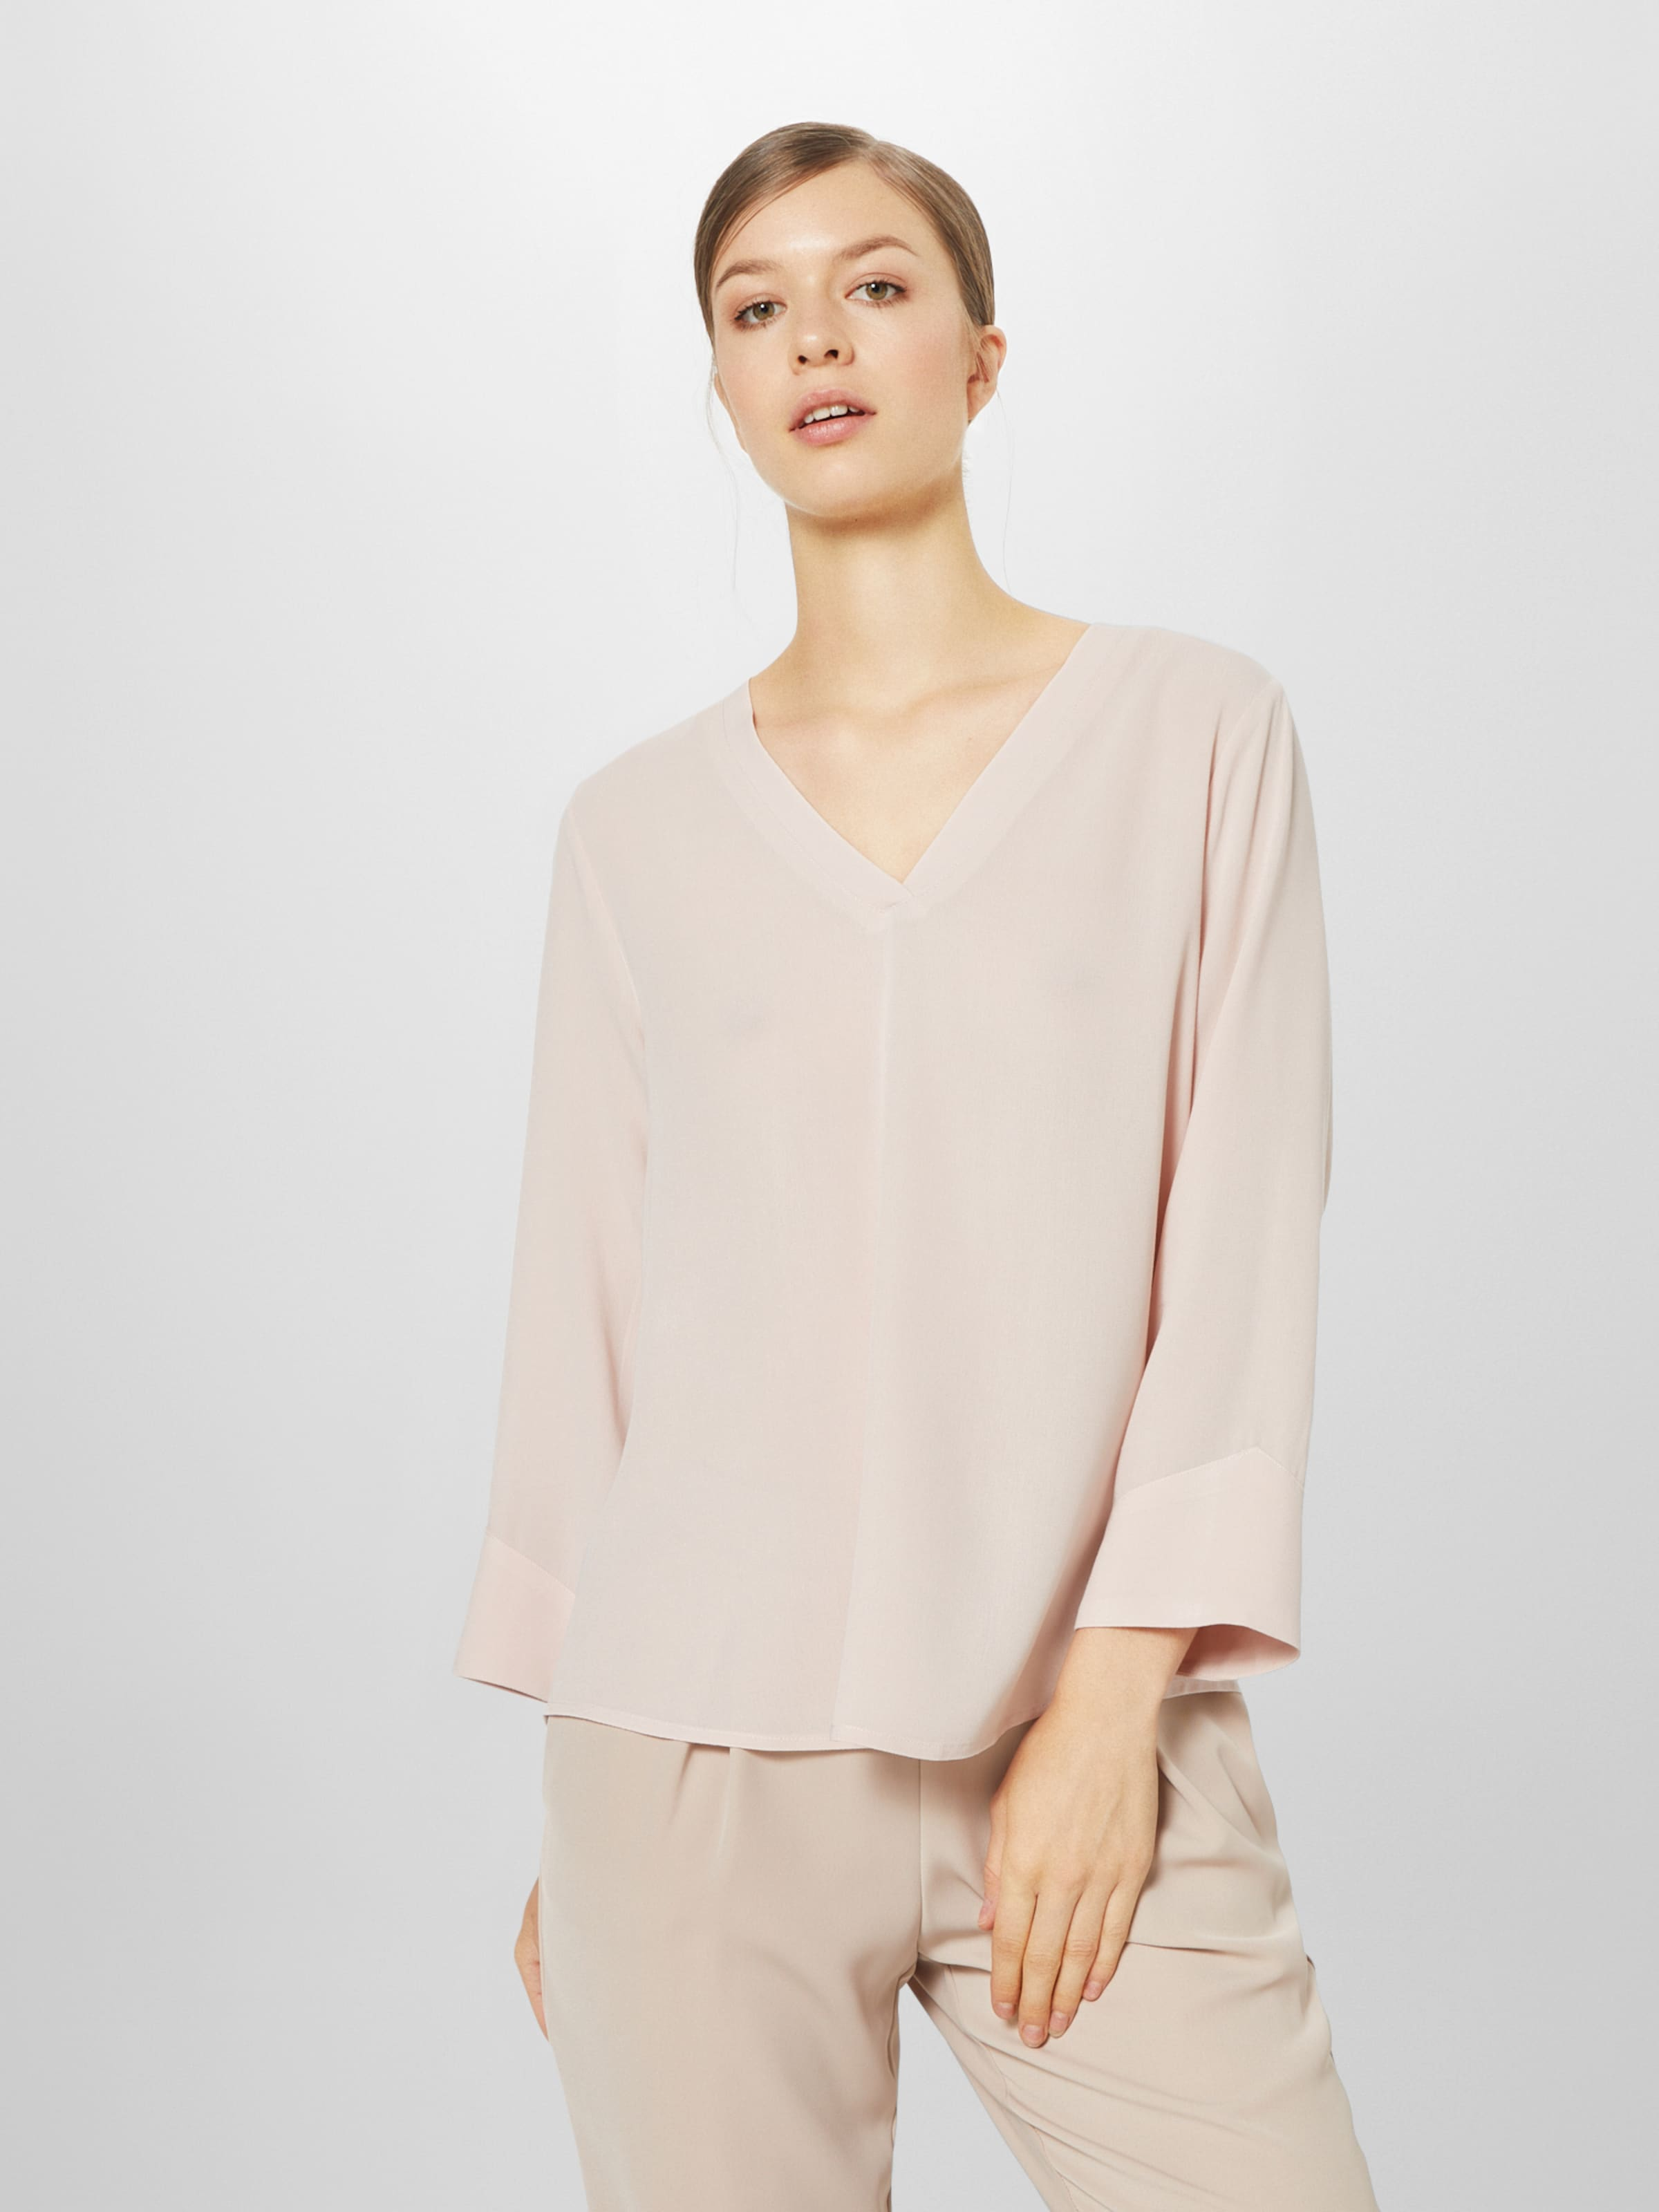 Bluse Bluse Object Rosa 'bay' 'bay' In Object Object In Rosa Bluse In 'bay' UVqMSGzp